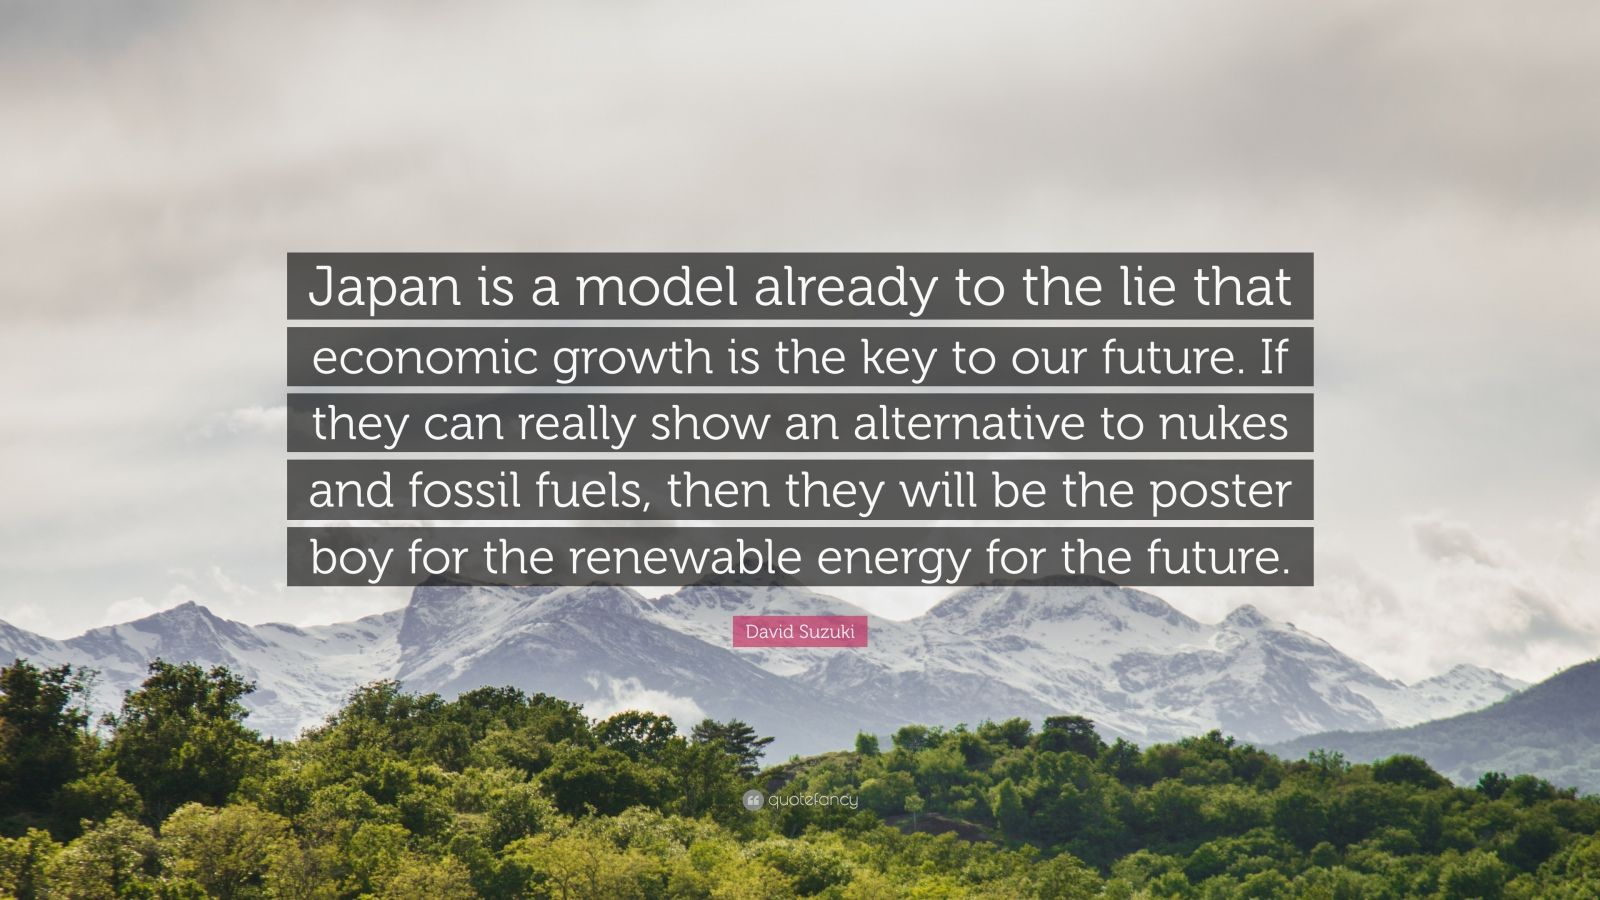 "David Suzuki Quote: ""Japan is a model already to the lie that economic growth is the key to our future. If they can really show an alternative to nukes and fossil fuels, then they will be the poster boy for the renewable energy for the future."""